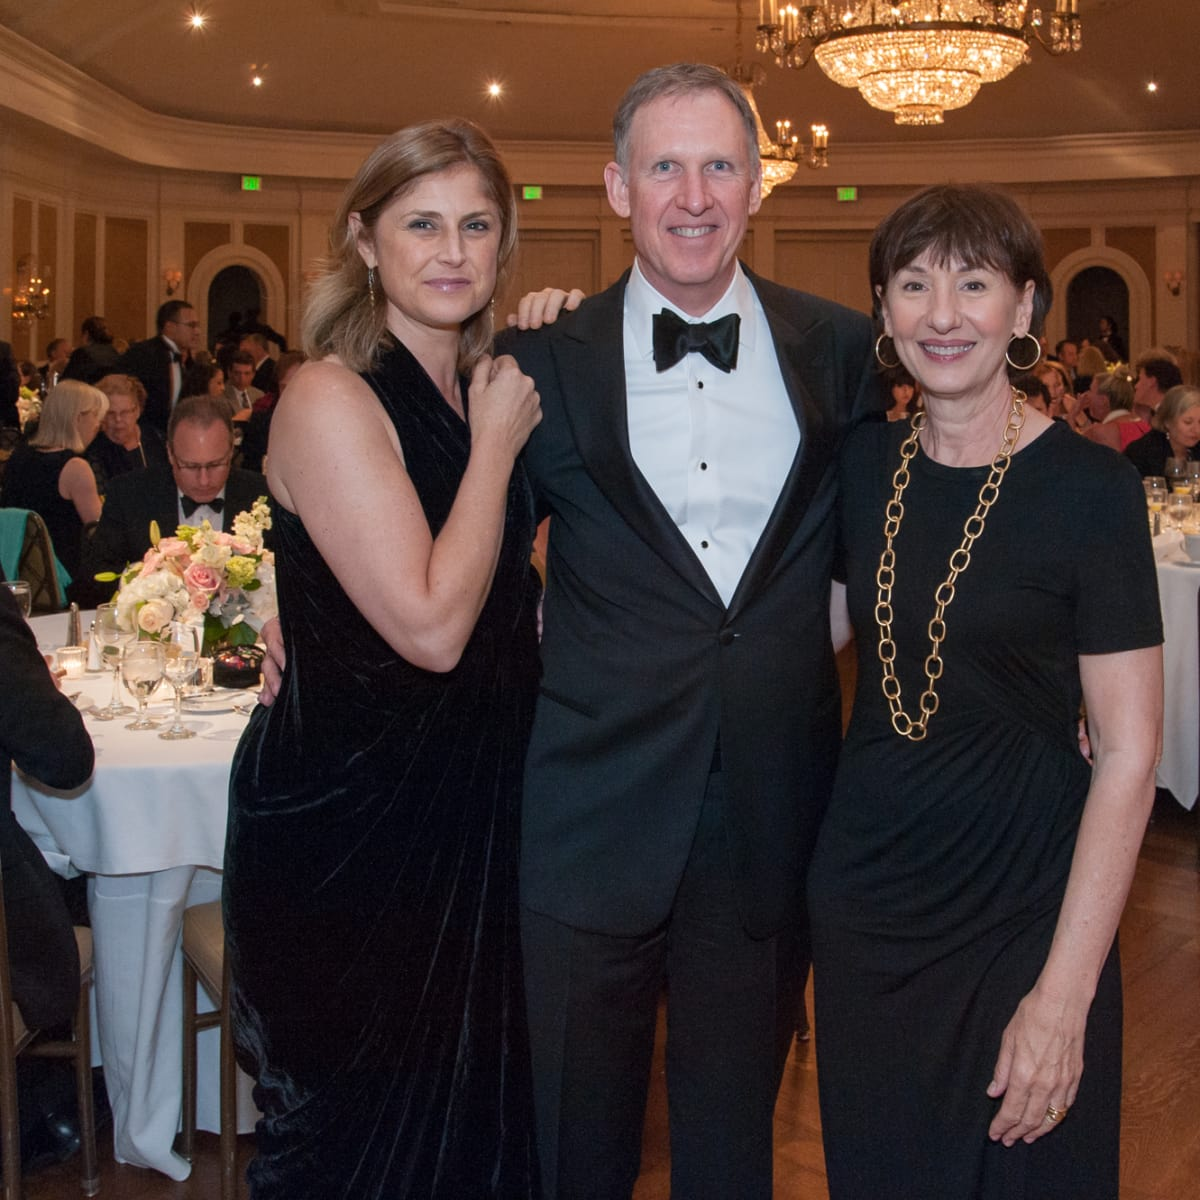 Houston, River Oaks Chamber Orchestra Gala, October 2015, Suzanne LeFevre, Scott and Betsy Baxter